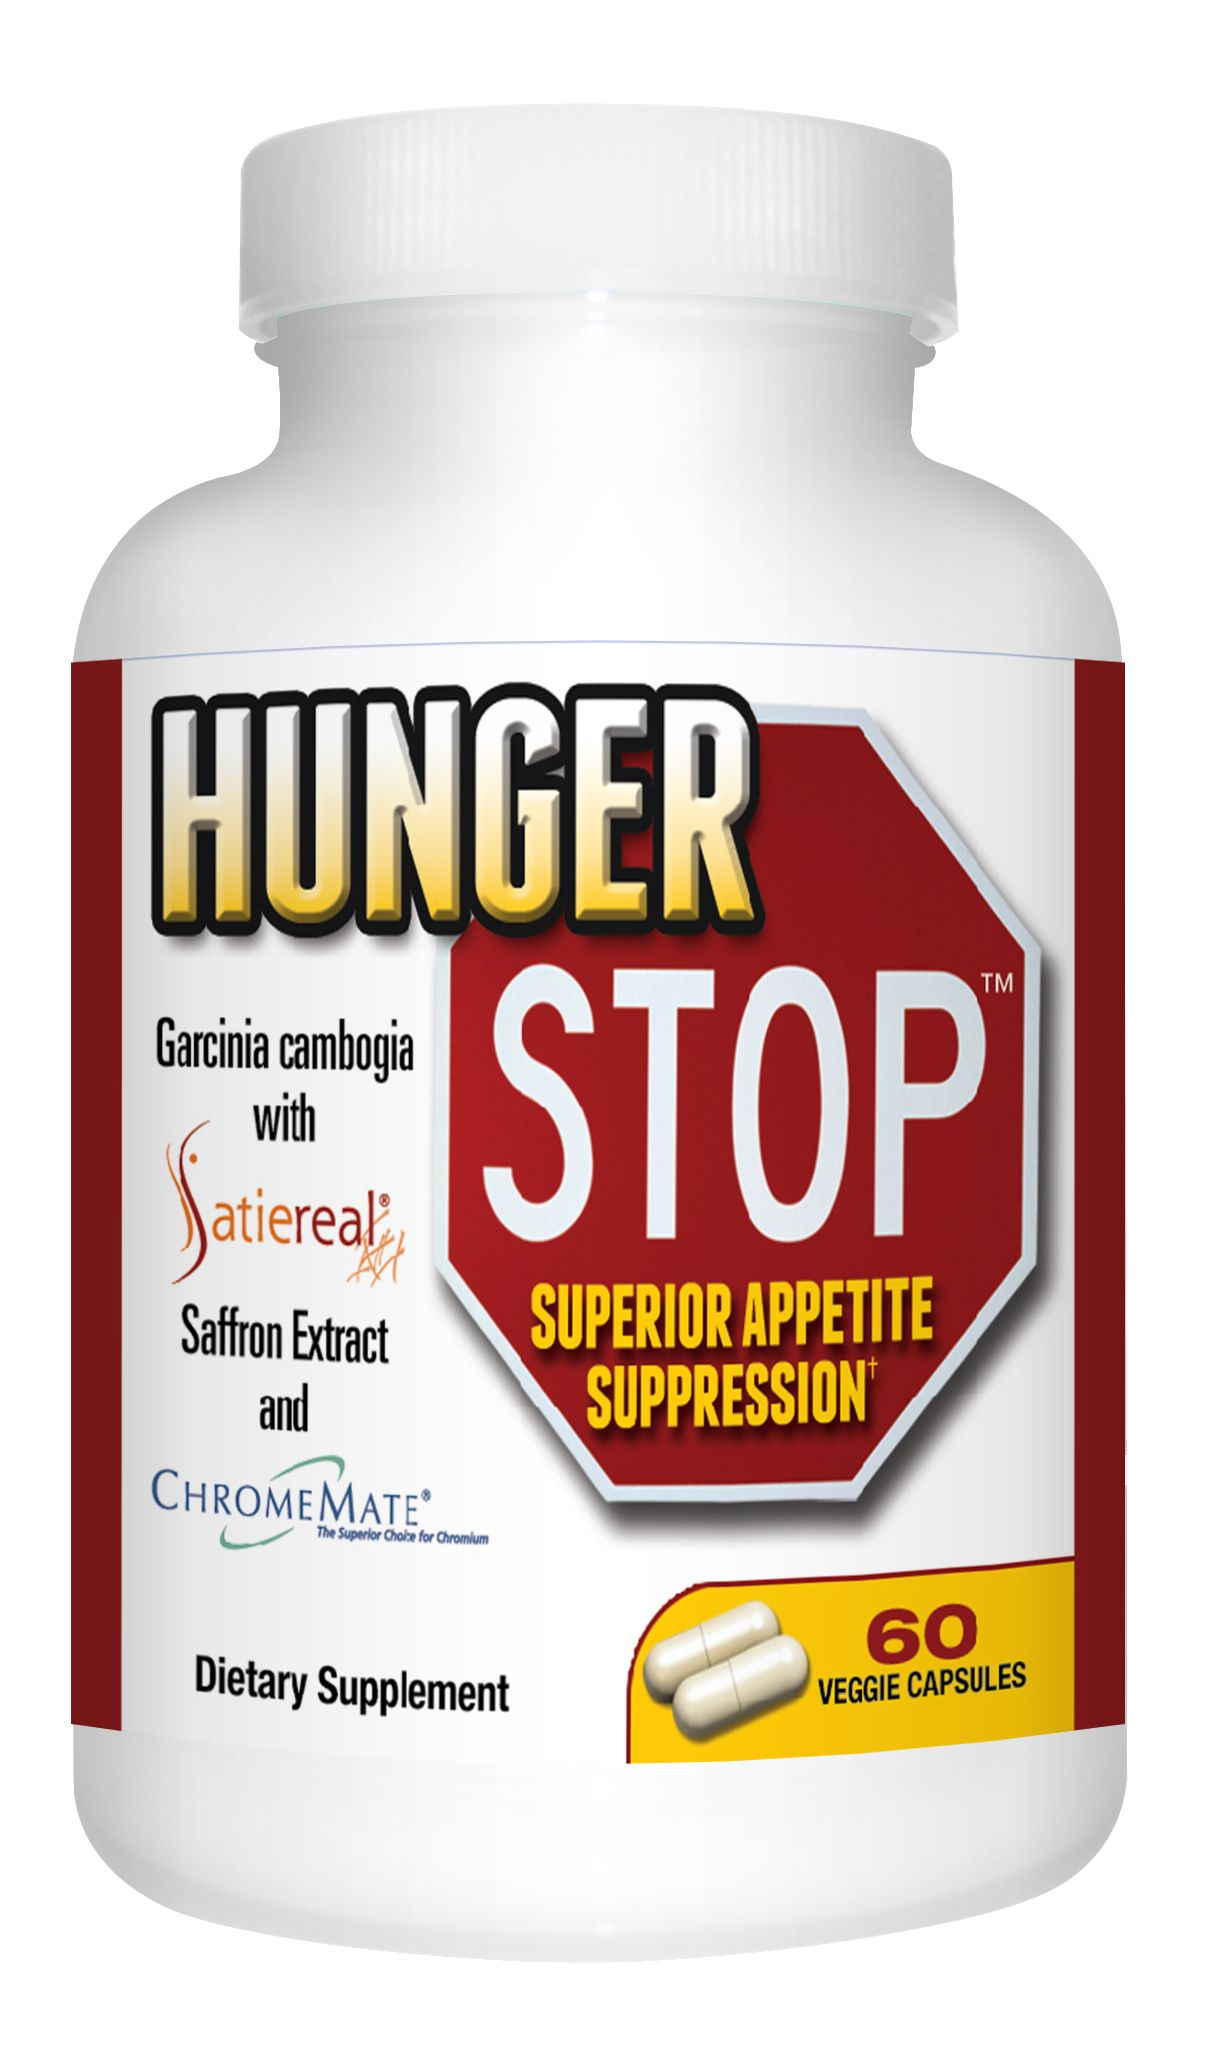 Hunger Stop Is A Combination Of Garcinia Cambogia Satiereal